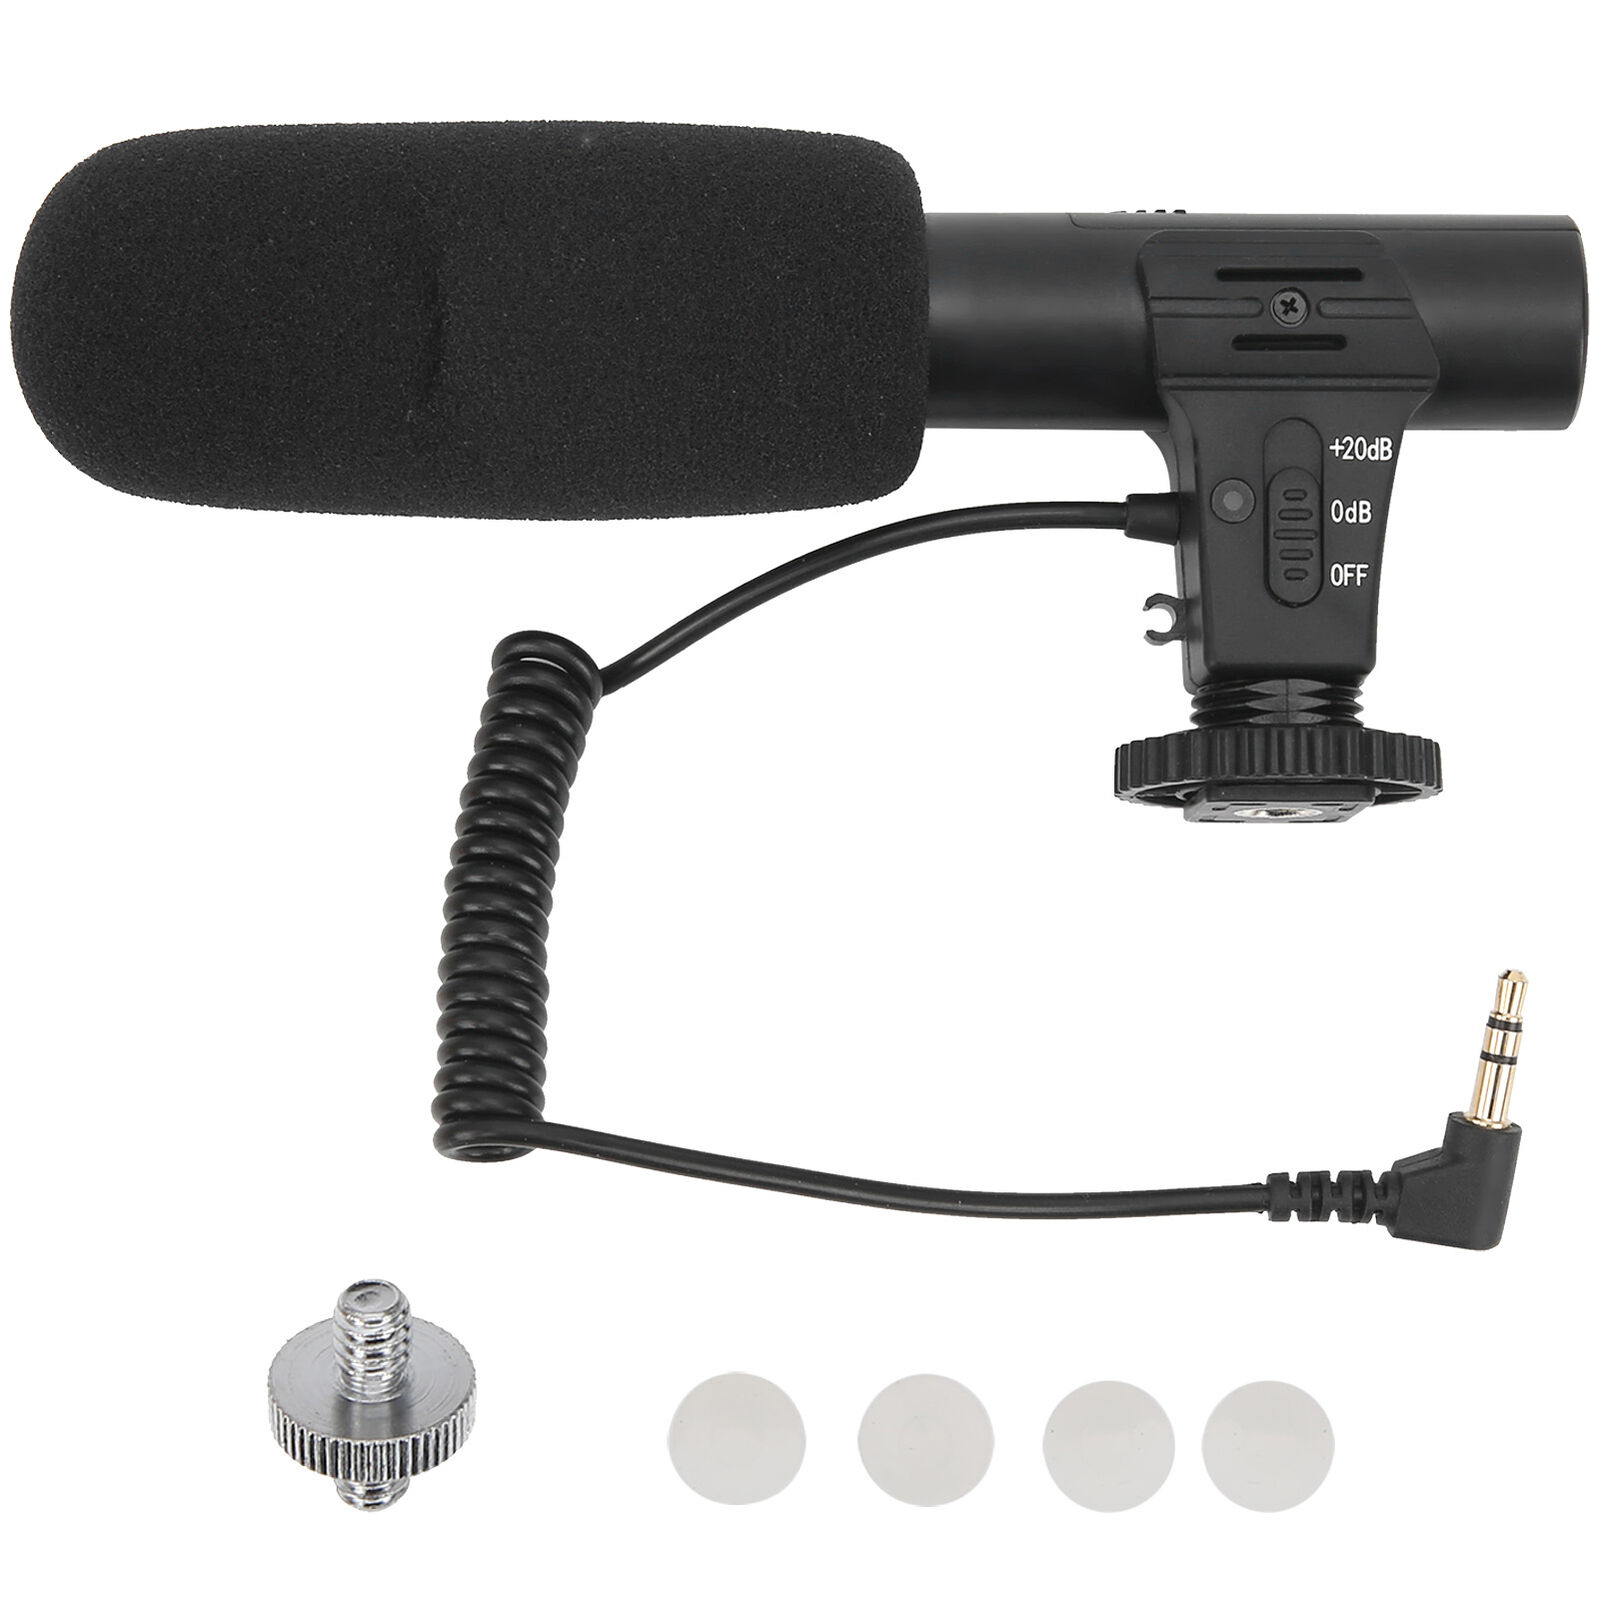 3.5mm Stereo Live Broadcast Microphone With 1/4in Screw for DJI OSMO POCKET 2